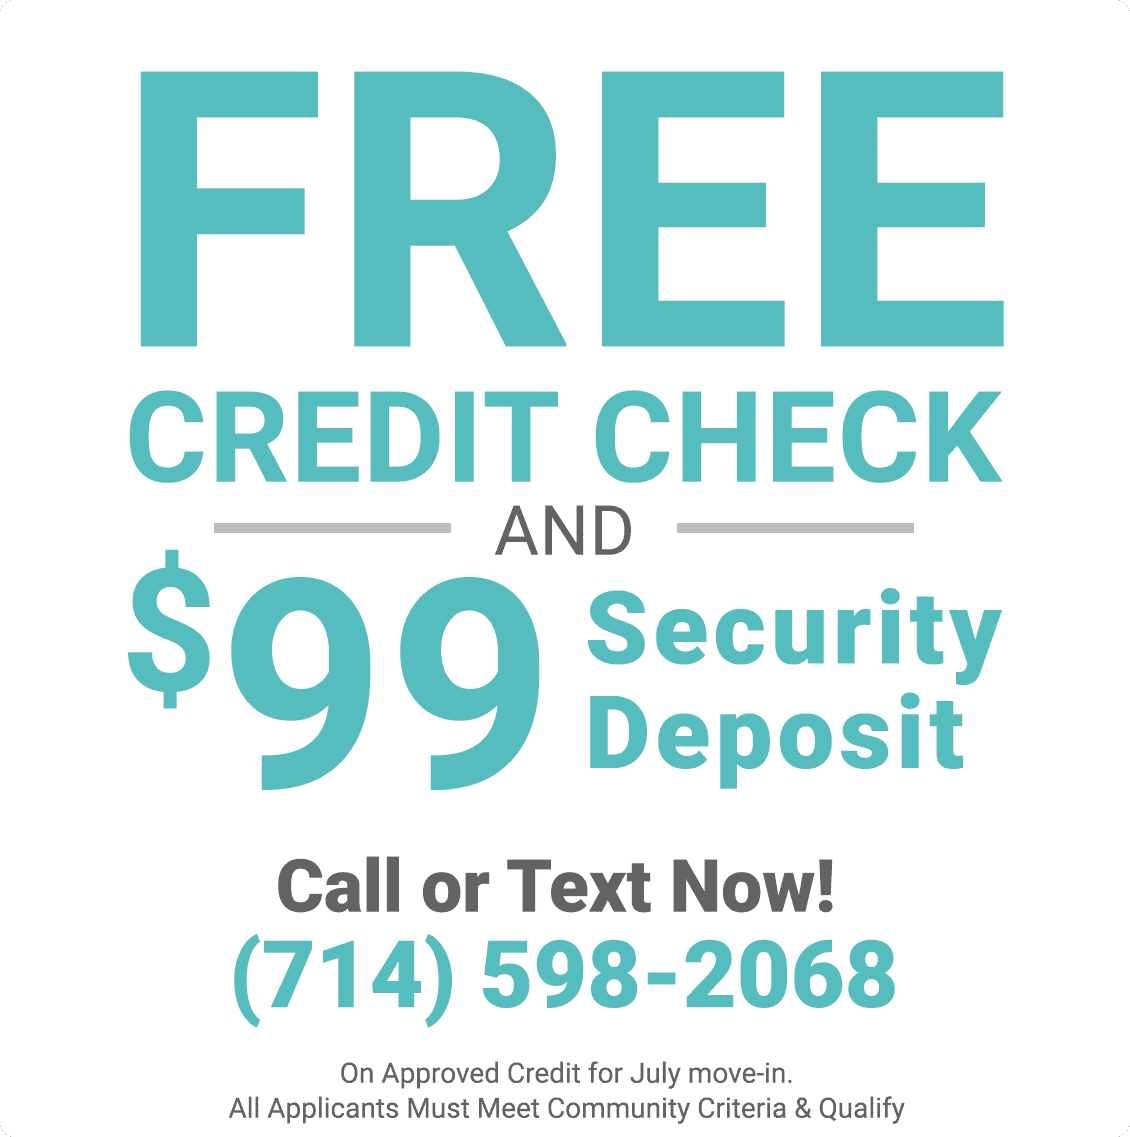 Free Credit Check & $99 Security Deposit On Approved Credit for July Move In. All Applicants Must Meet Community Criteria & Qualify.